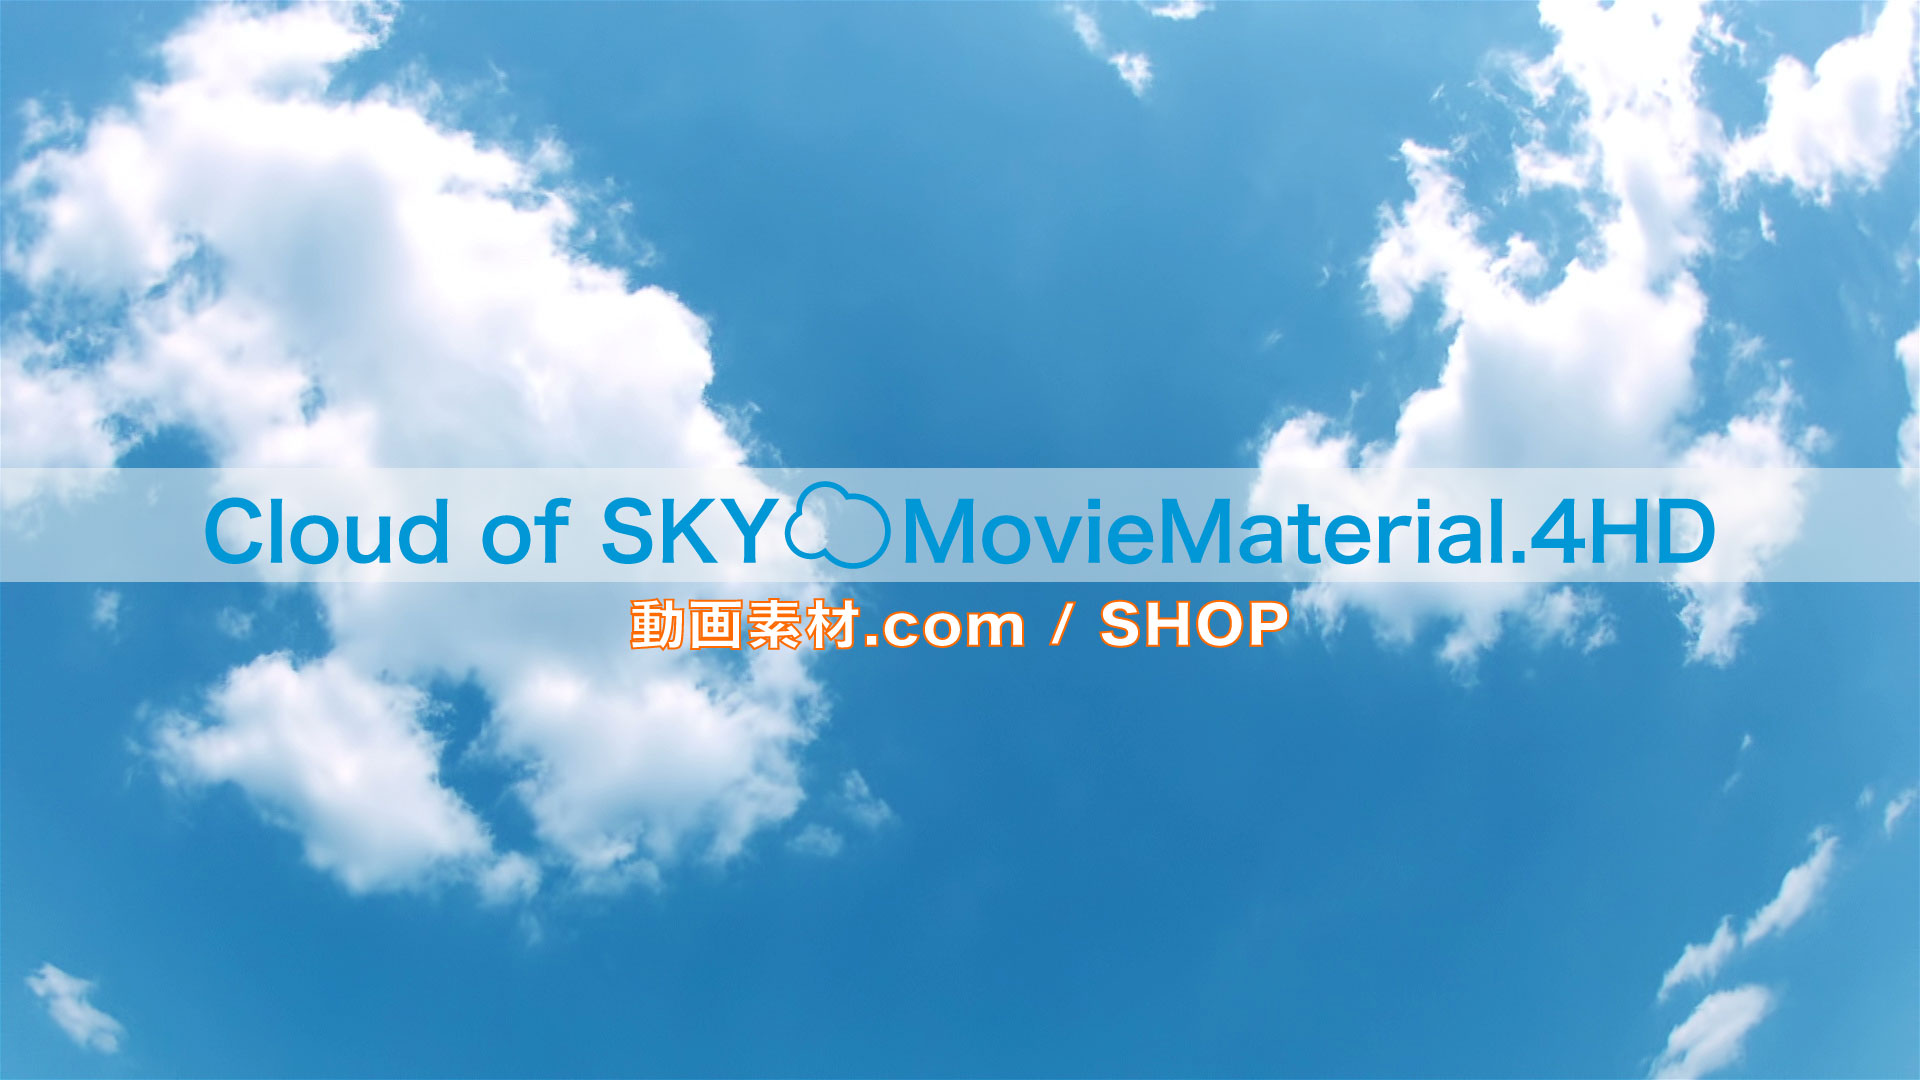 Cloud of SKY MovieMaterial.4HD 空と雲フルハイビジョン1920×1080p映像素材集image3